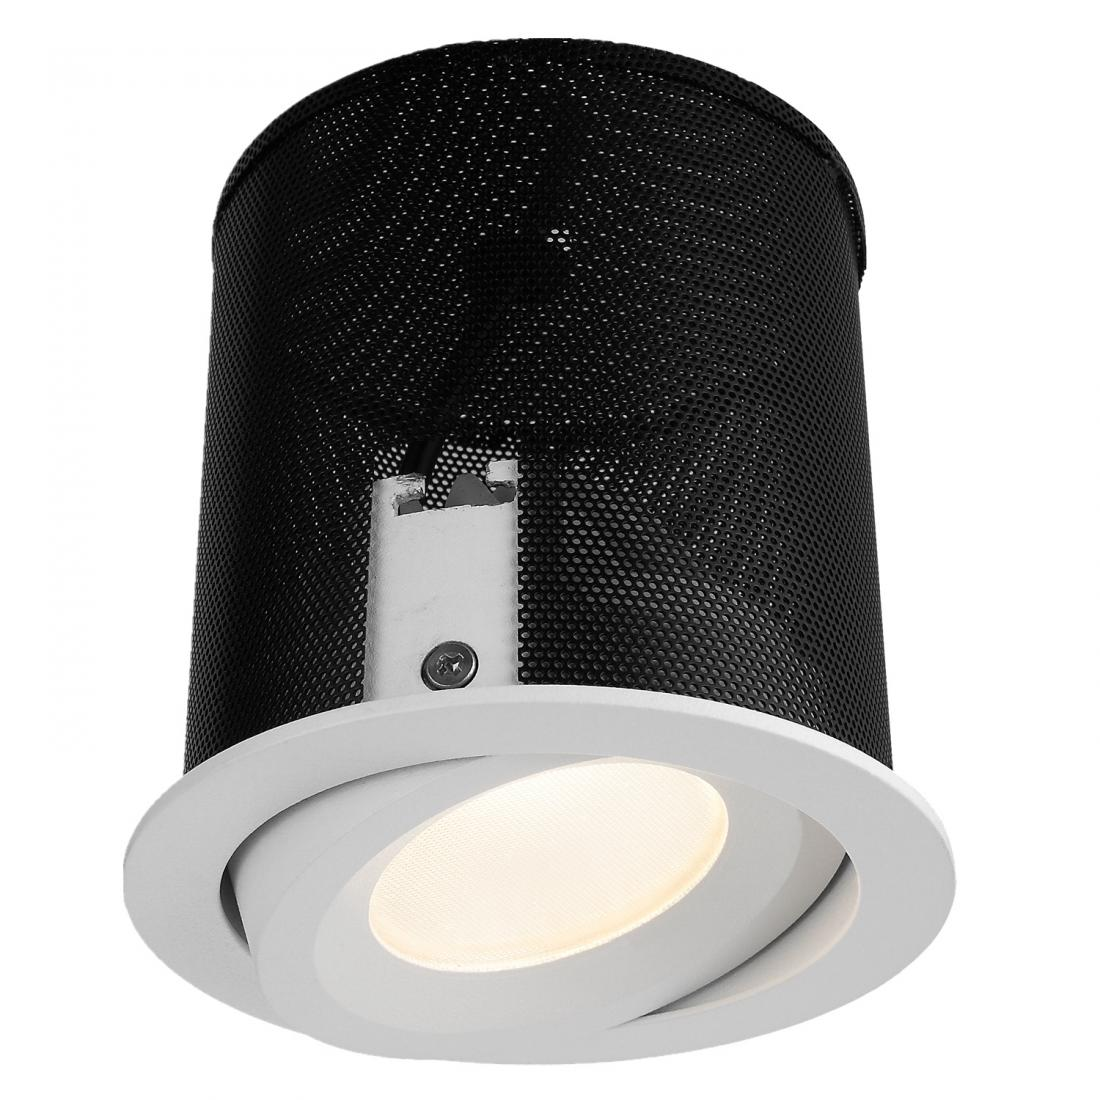 IP54 waterproof downlight